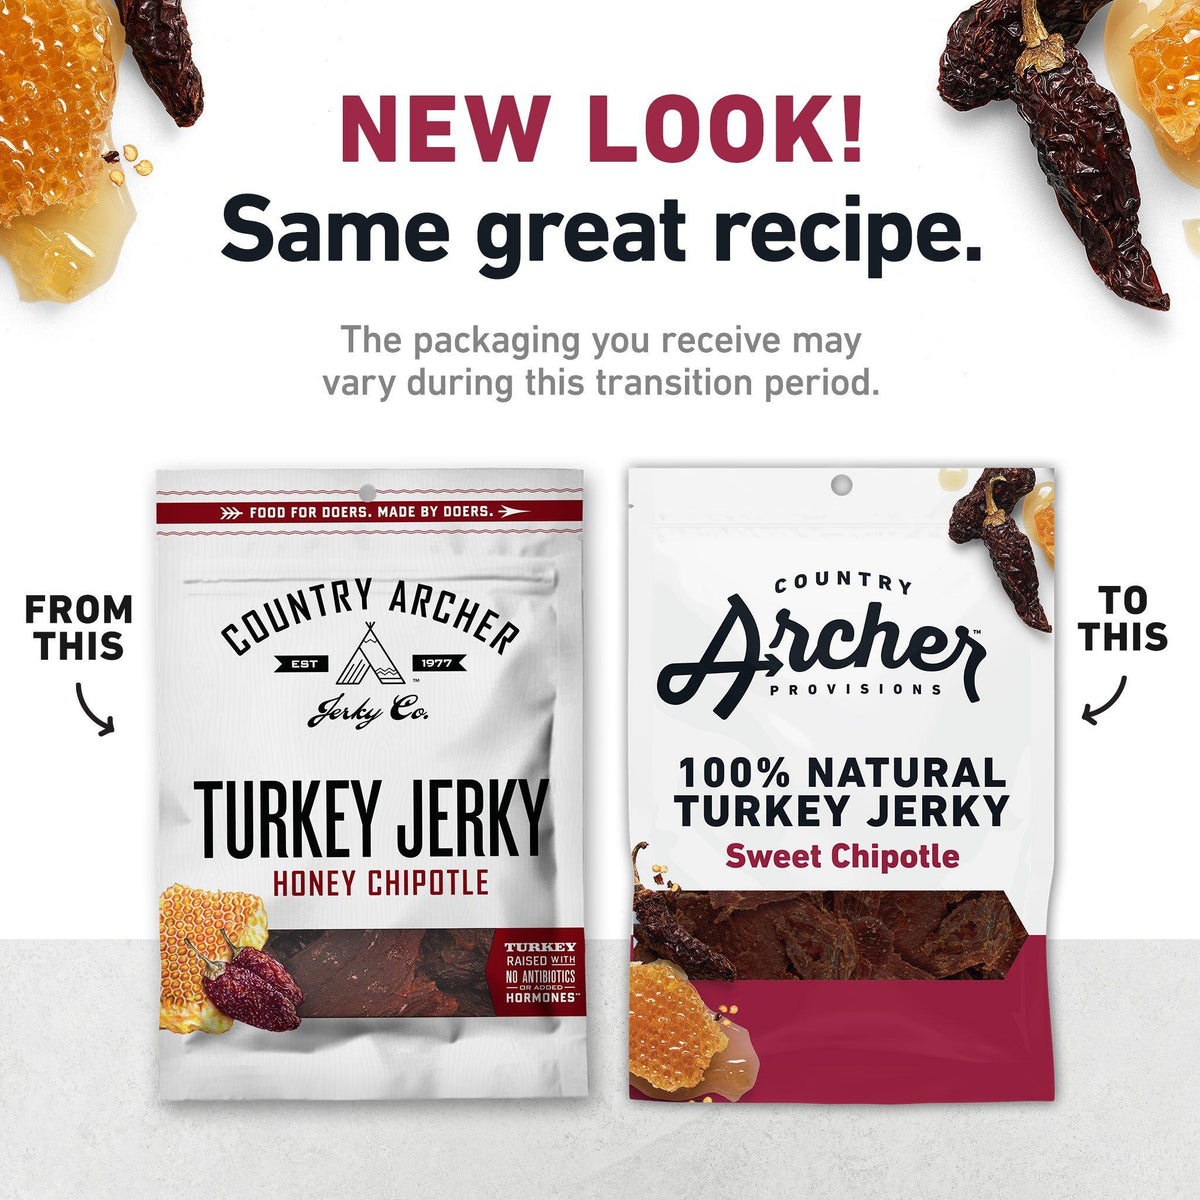 Sweet Chipotle Turkey Jerky